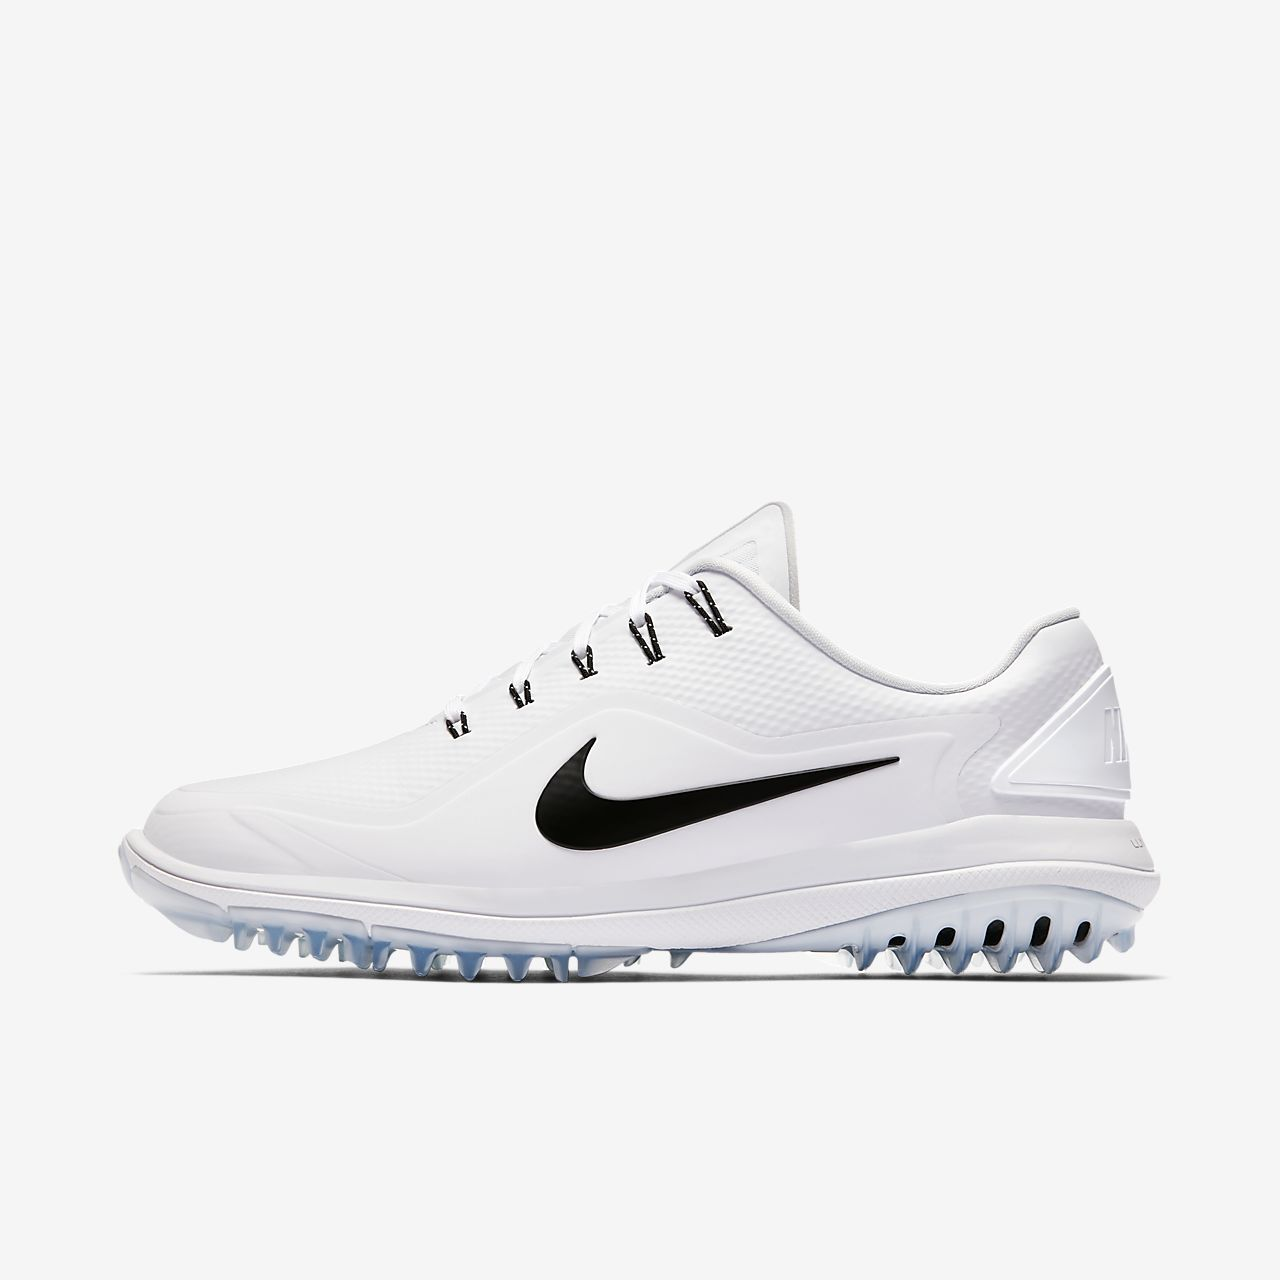 reputable site 8d28c 4a46a Nike Lunar Control Vapor 2 Men s Golf Shoe